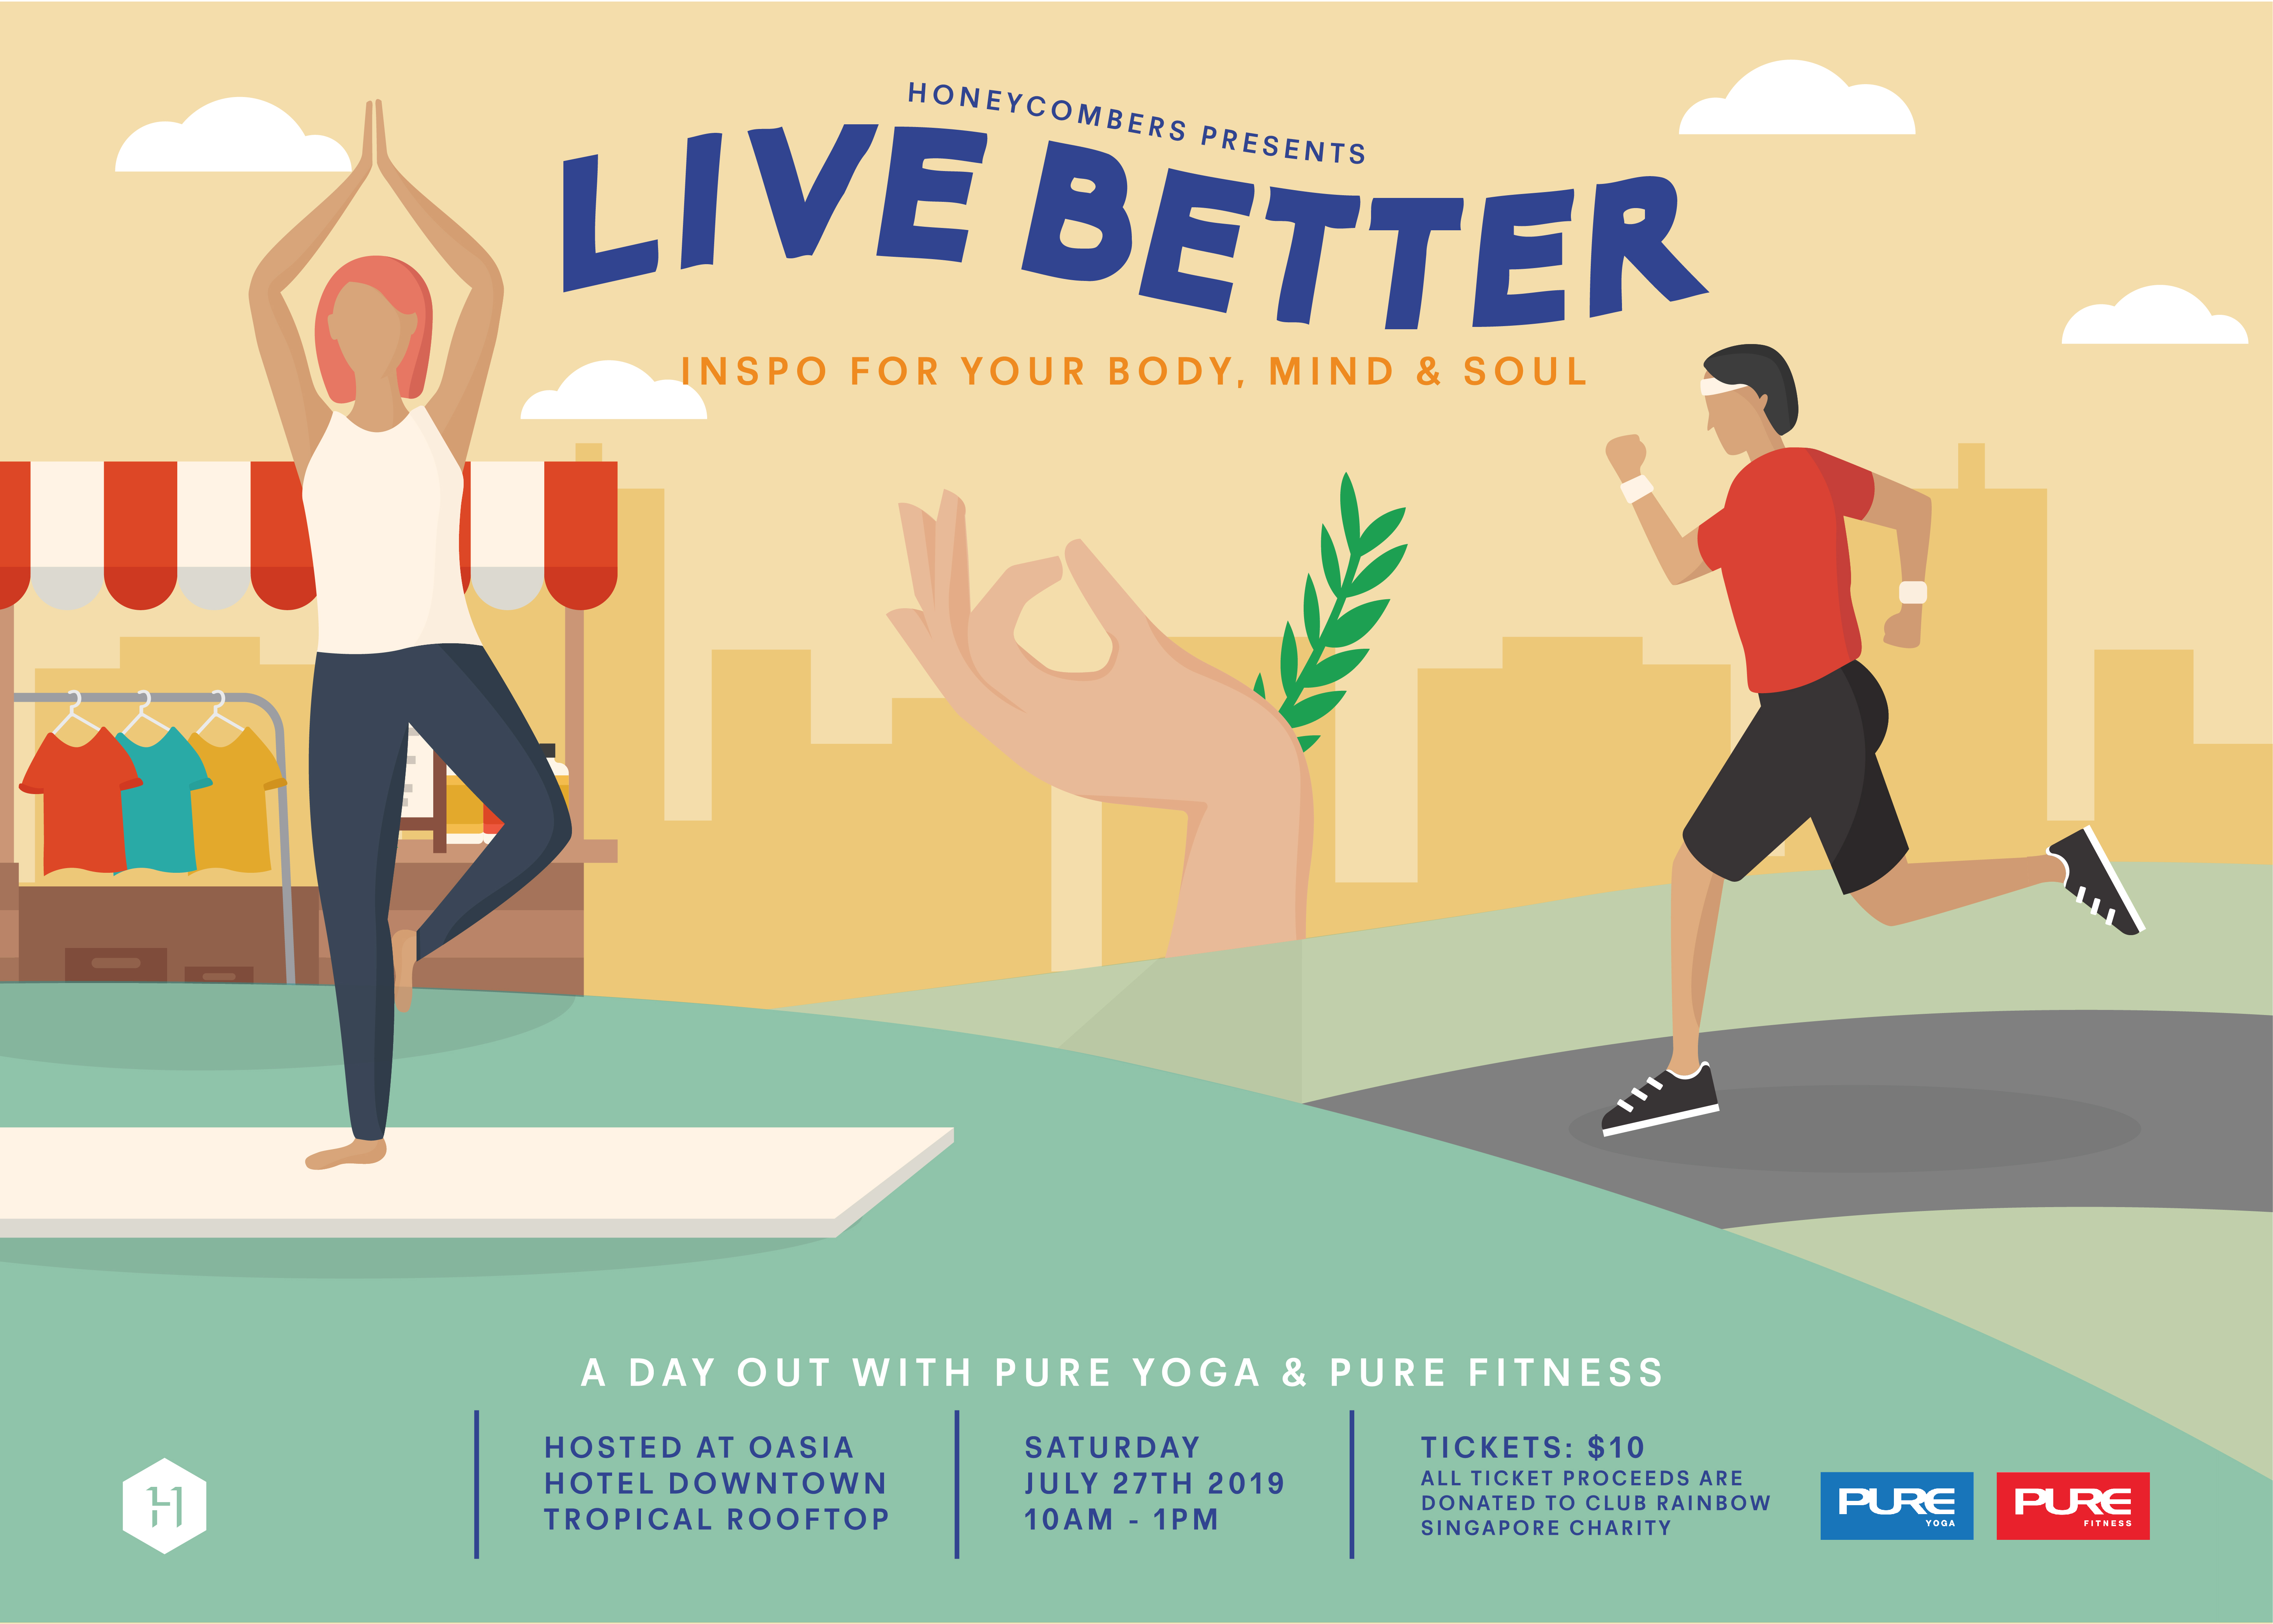 Live Better: a day of fitness, wellbeing workshops and conscious shopping with Pure Yoga & Pure Fitness